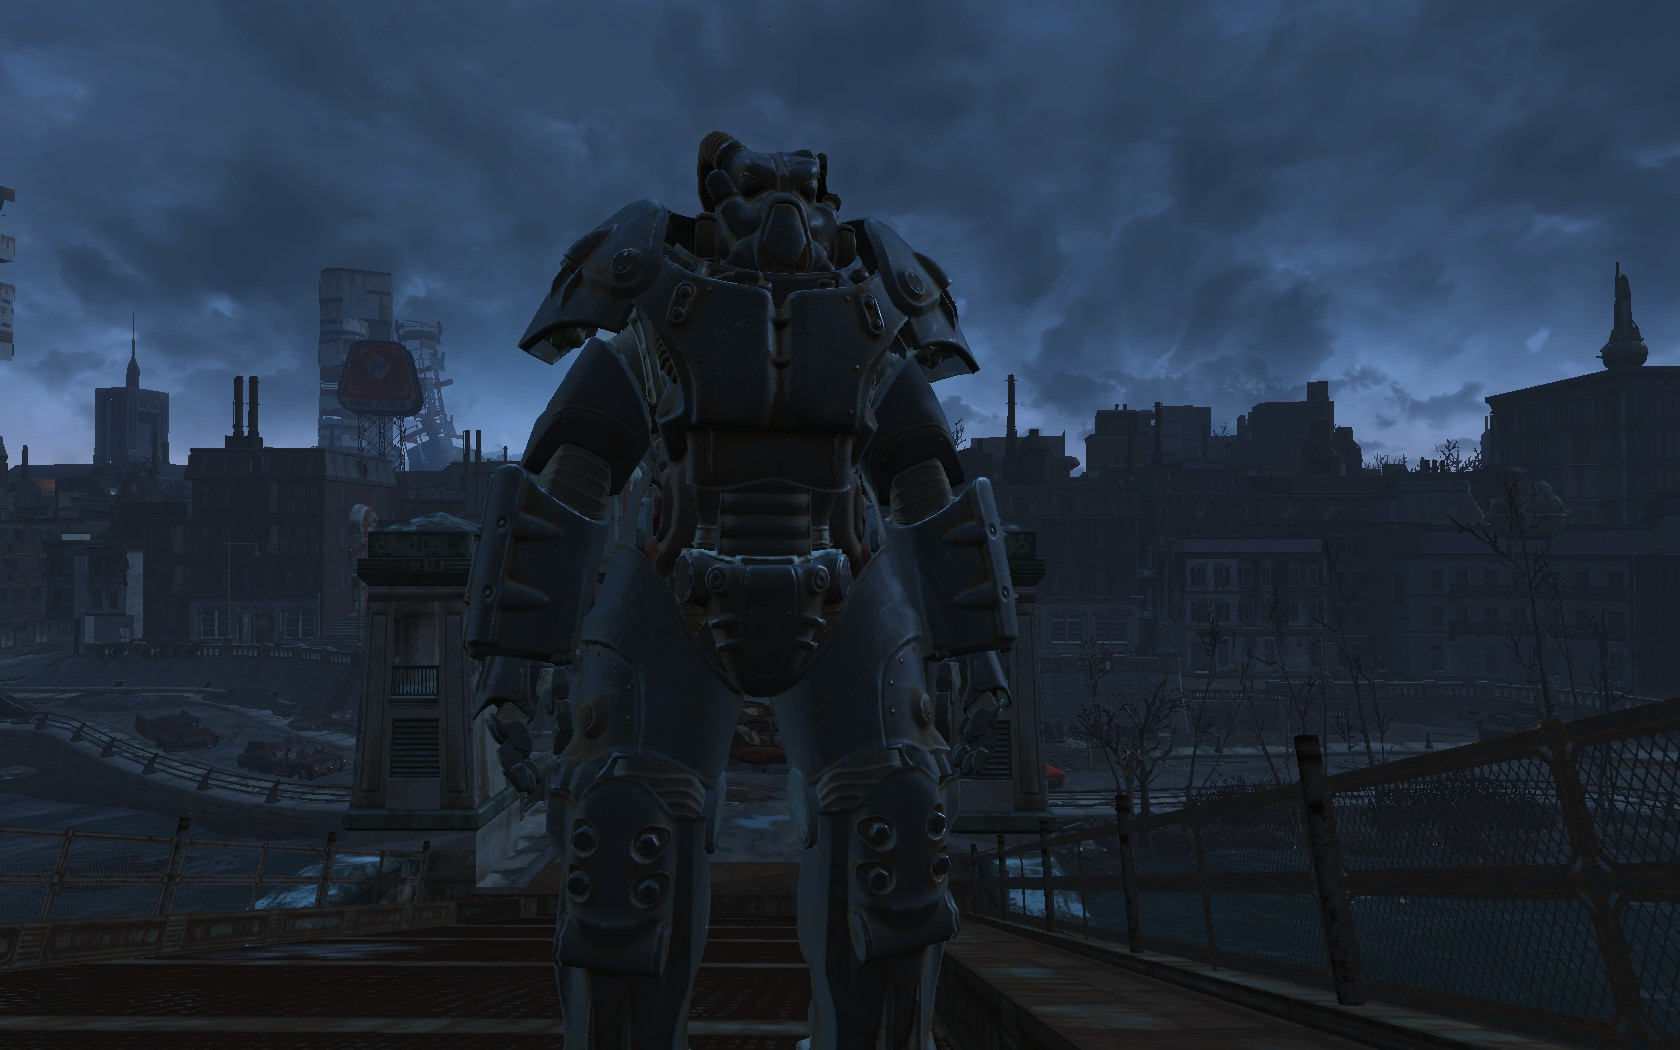 Steam Community :: Guide :: Power Armor Location Guide